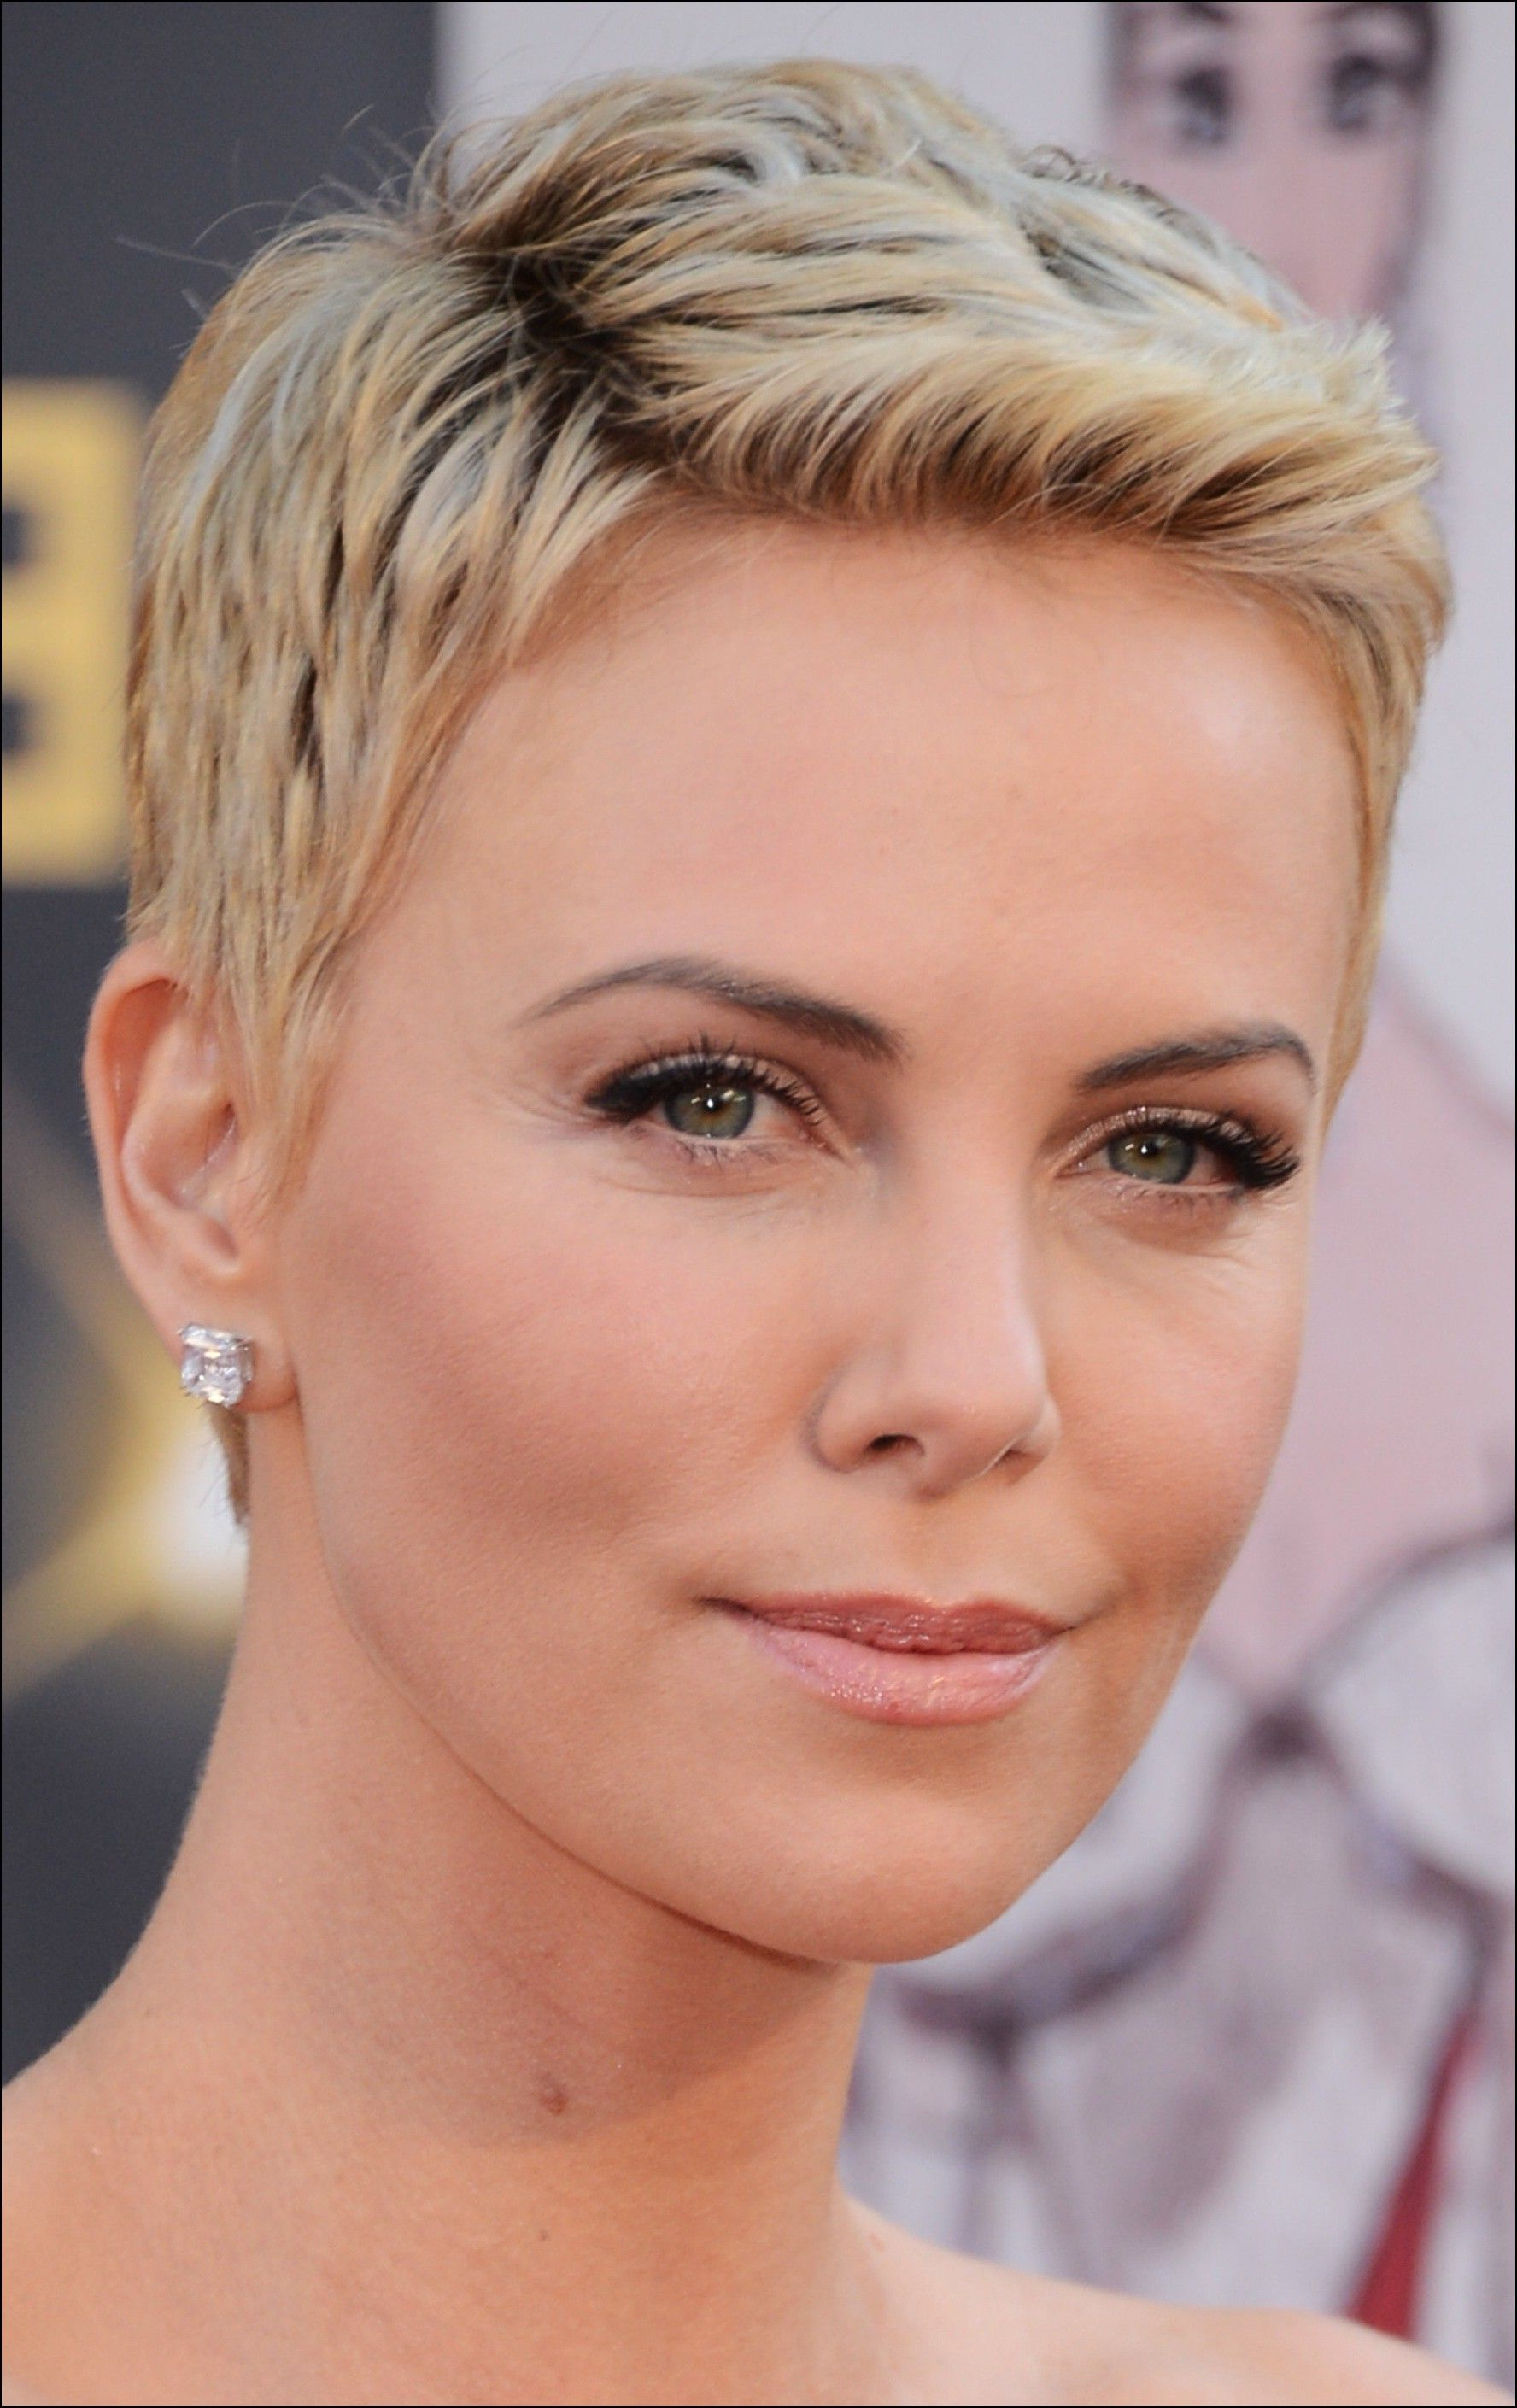 Super Short Pixie Haircuts For Round Faces | Haircut | Pinterest For Super Short Hairstyles For Round Faces (View 24 of 25)